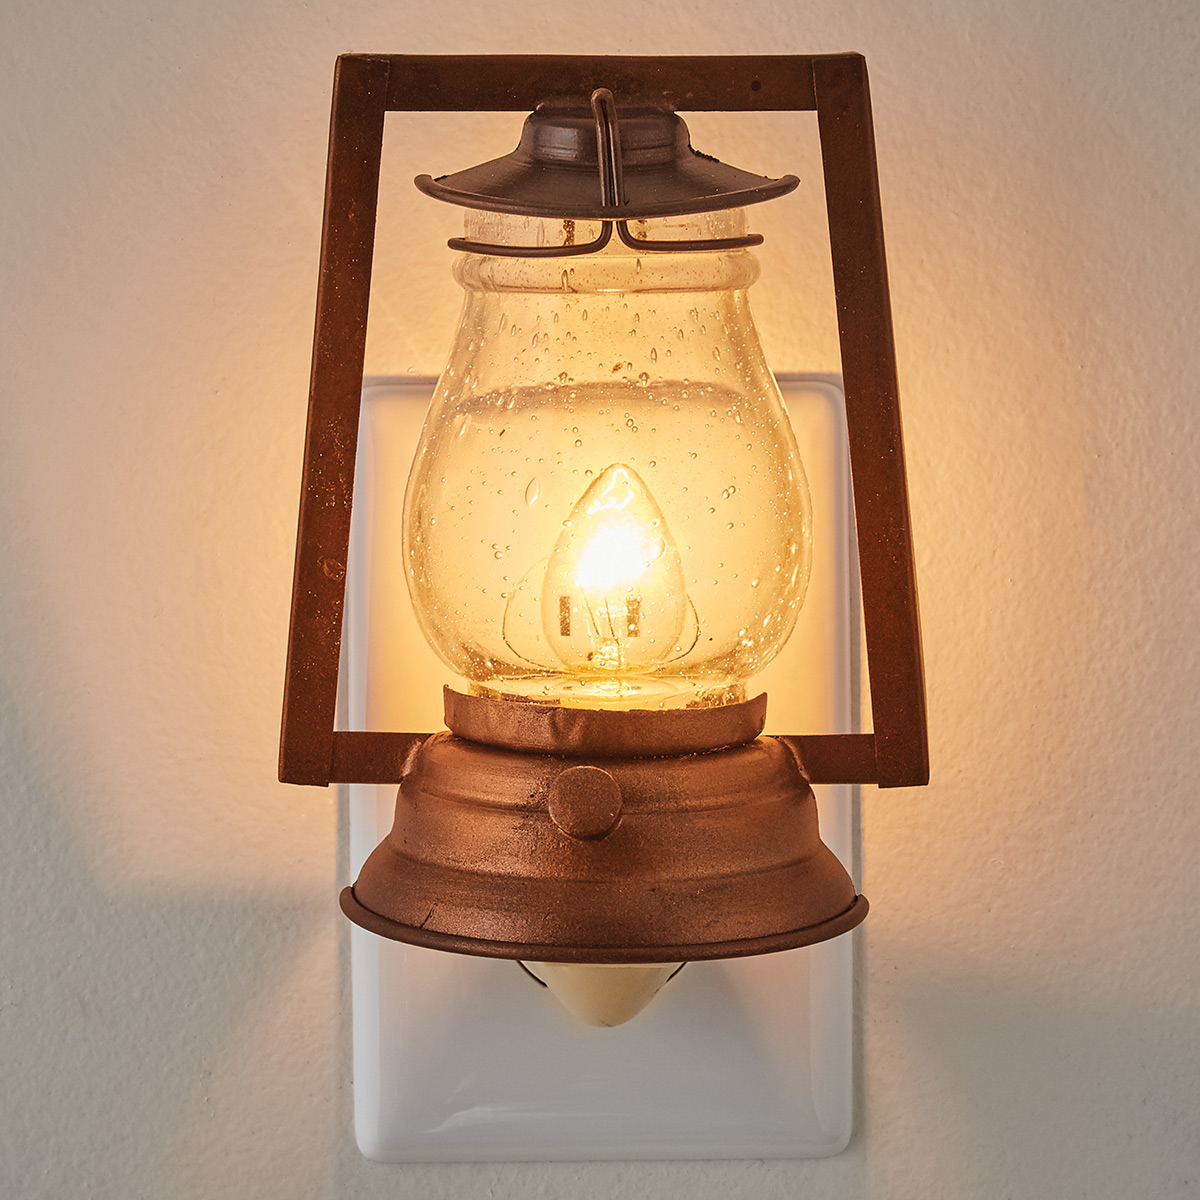 Nevada Lantern Nightlight